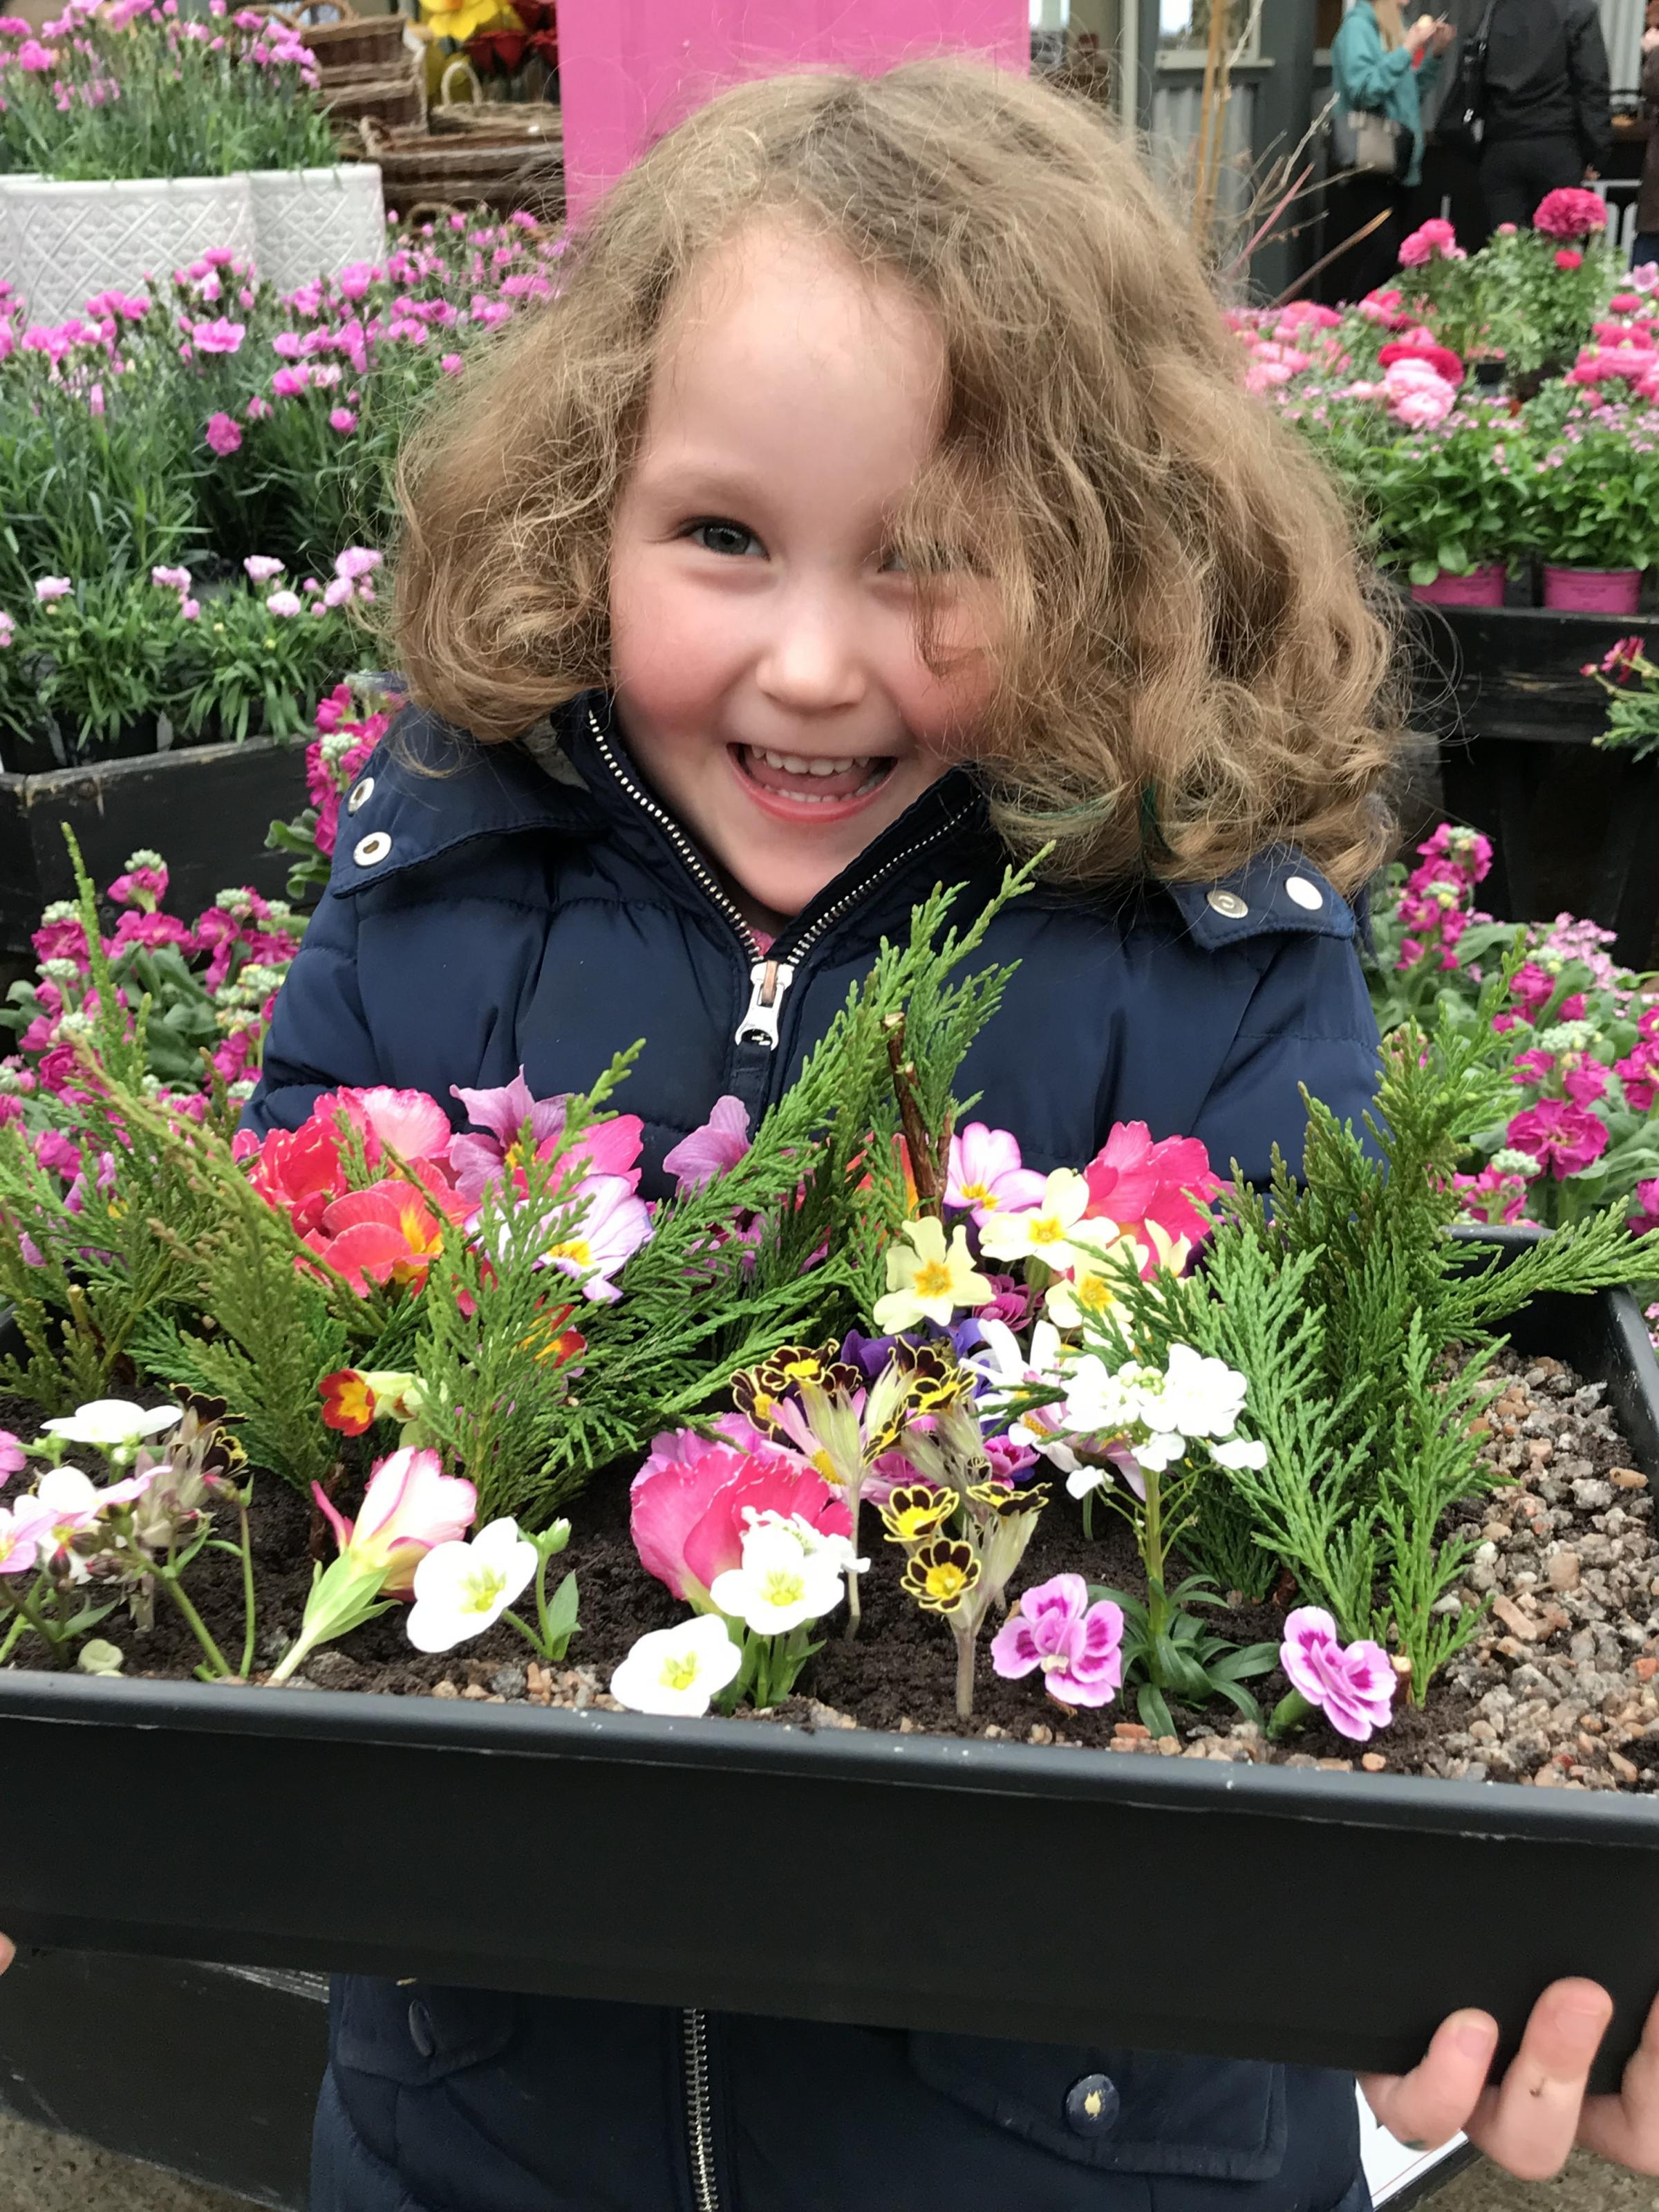 Showing off her own garden in a tray is five year-old Martha Gaffon from Reading, who was visiting her grandmother, Mrs Patricia Marchant from Moreton in Marsh.